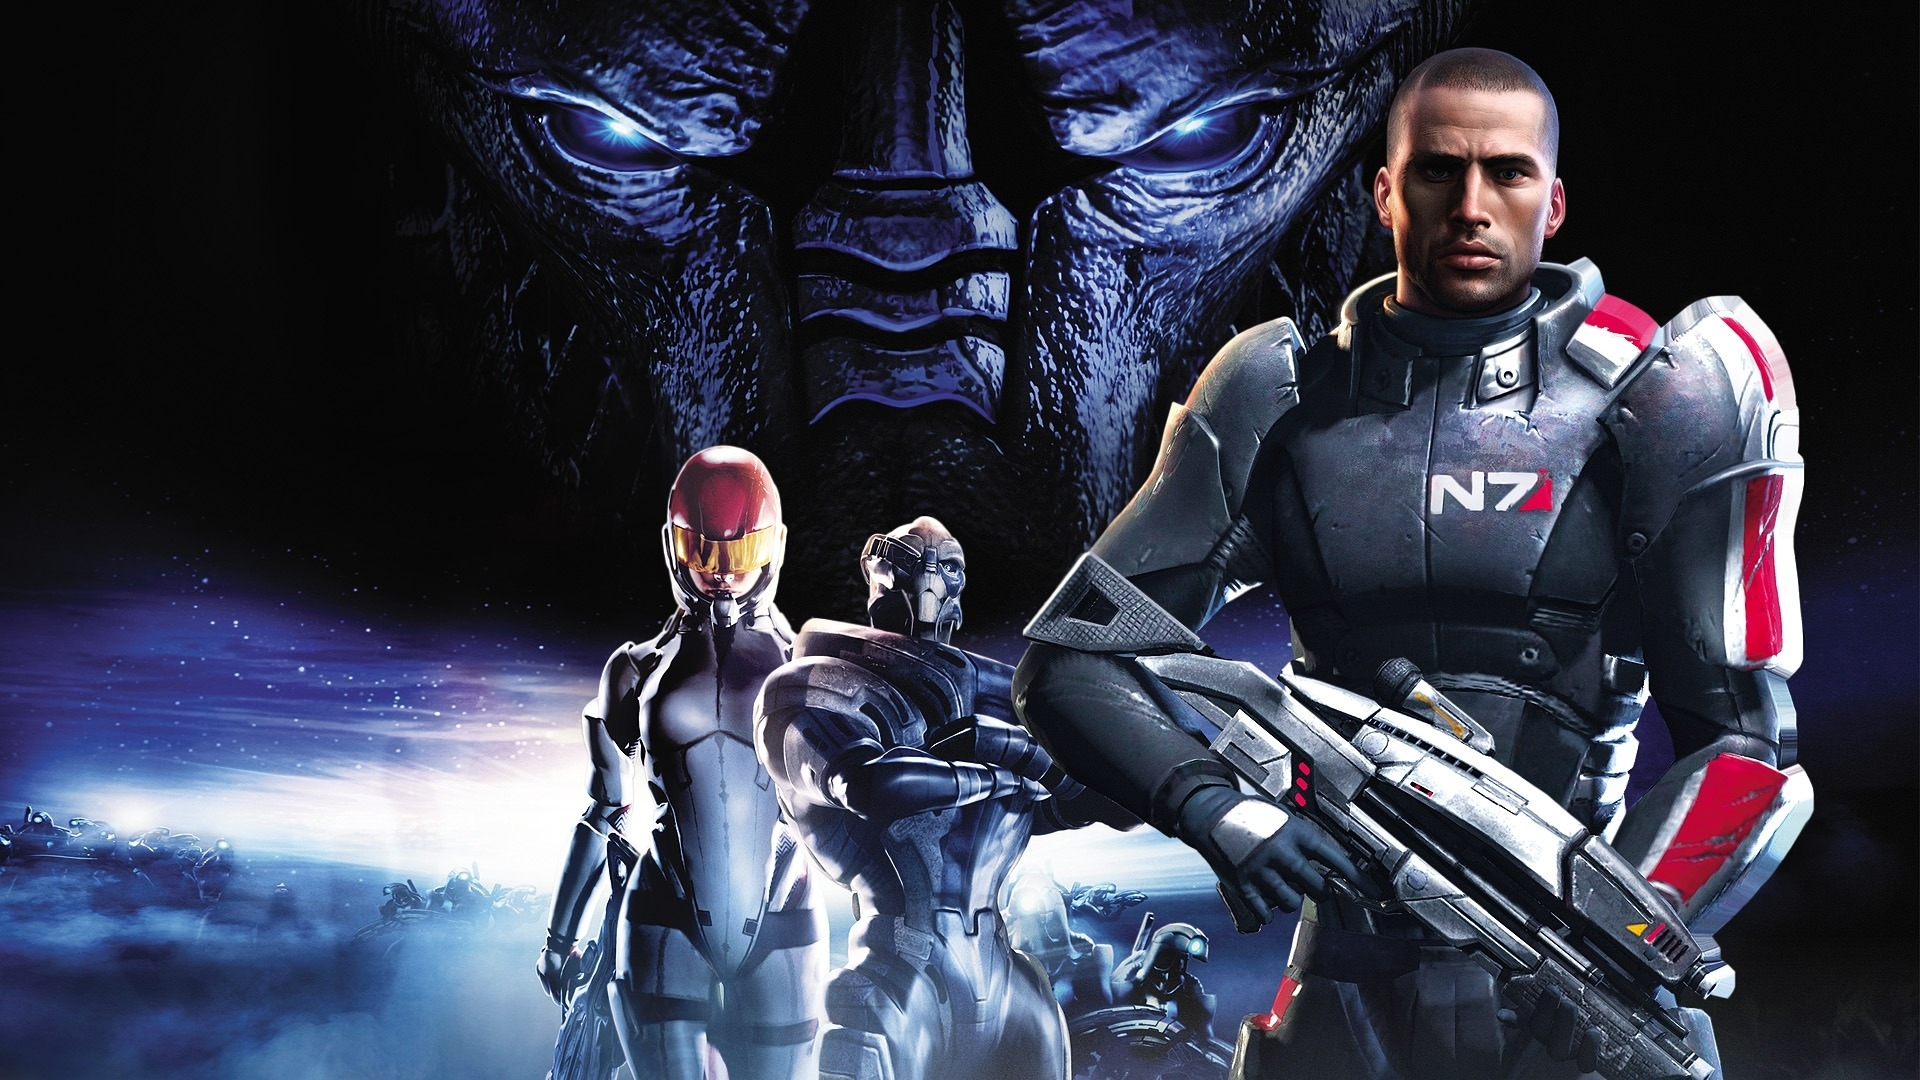 mass effect 2 hd wallpapers #1 - 1920x1080 wallpaper download - mass